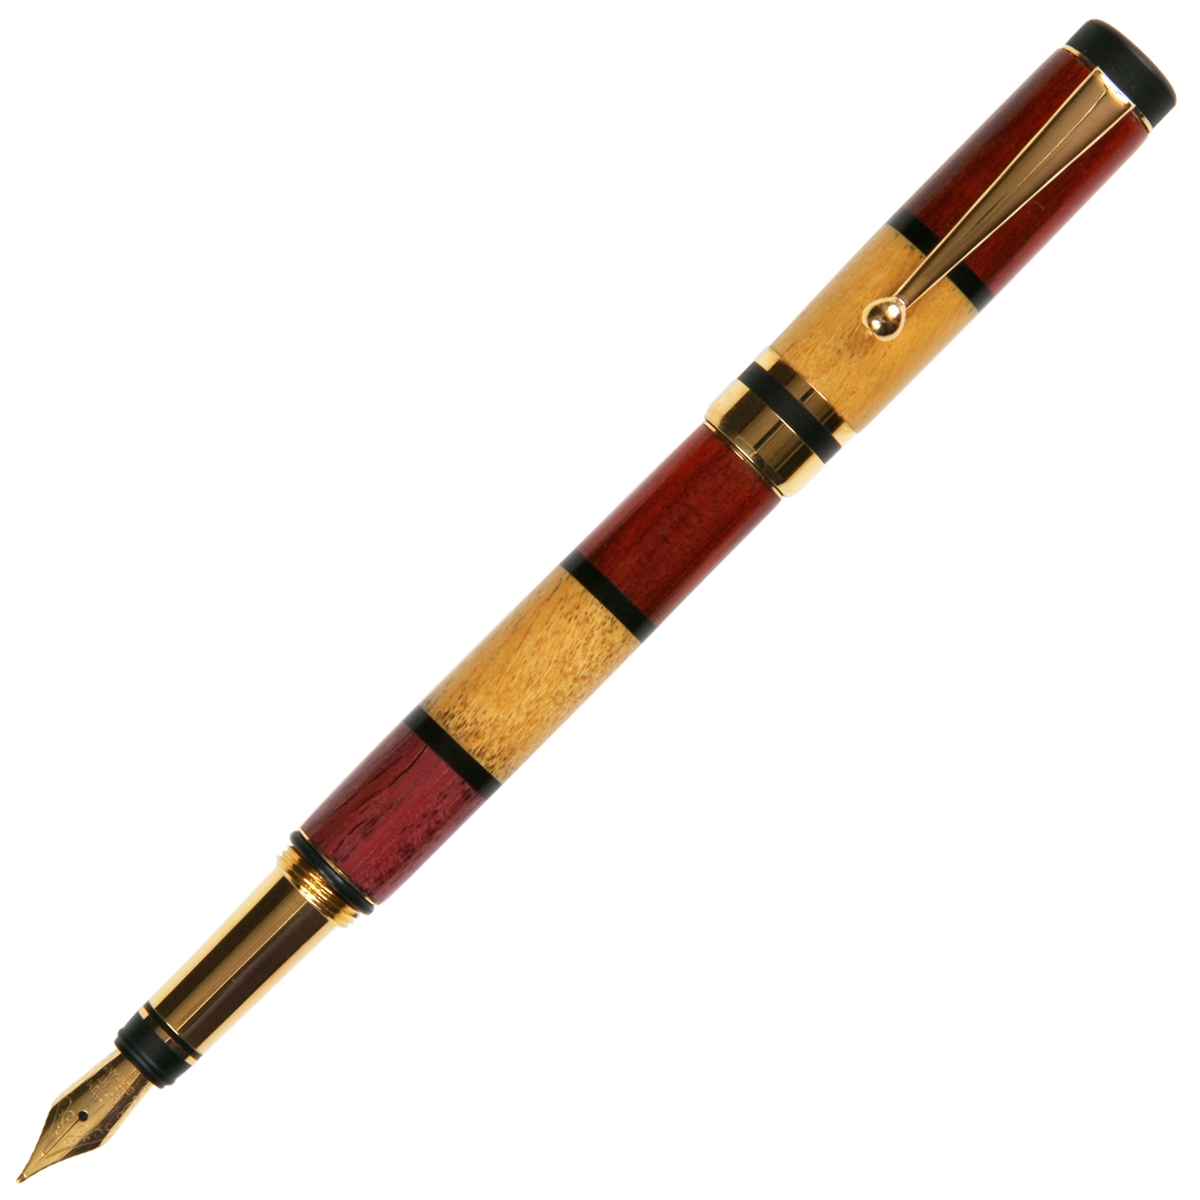 Classic Elite Fountain Pen - Red, Yellow  & Purpleheart with Ebony Inlays